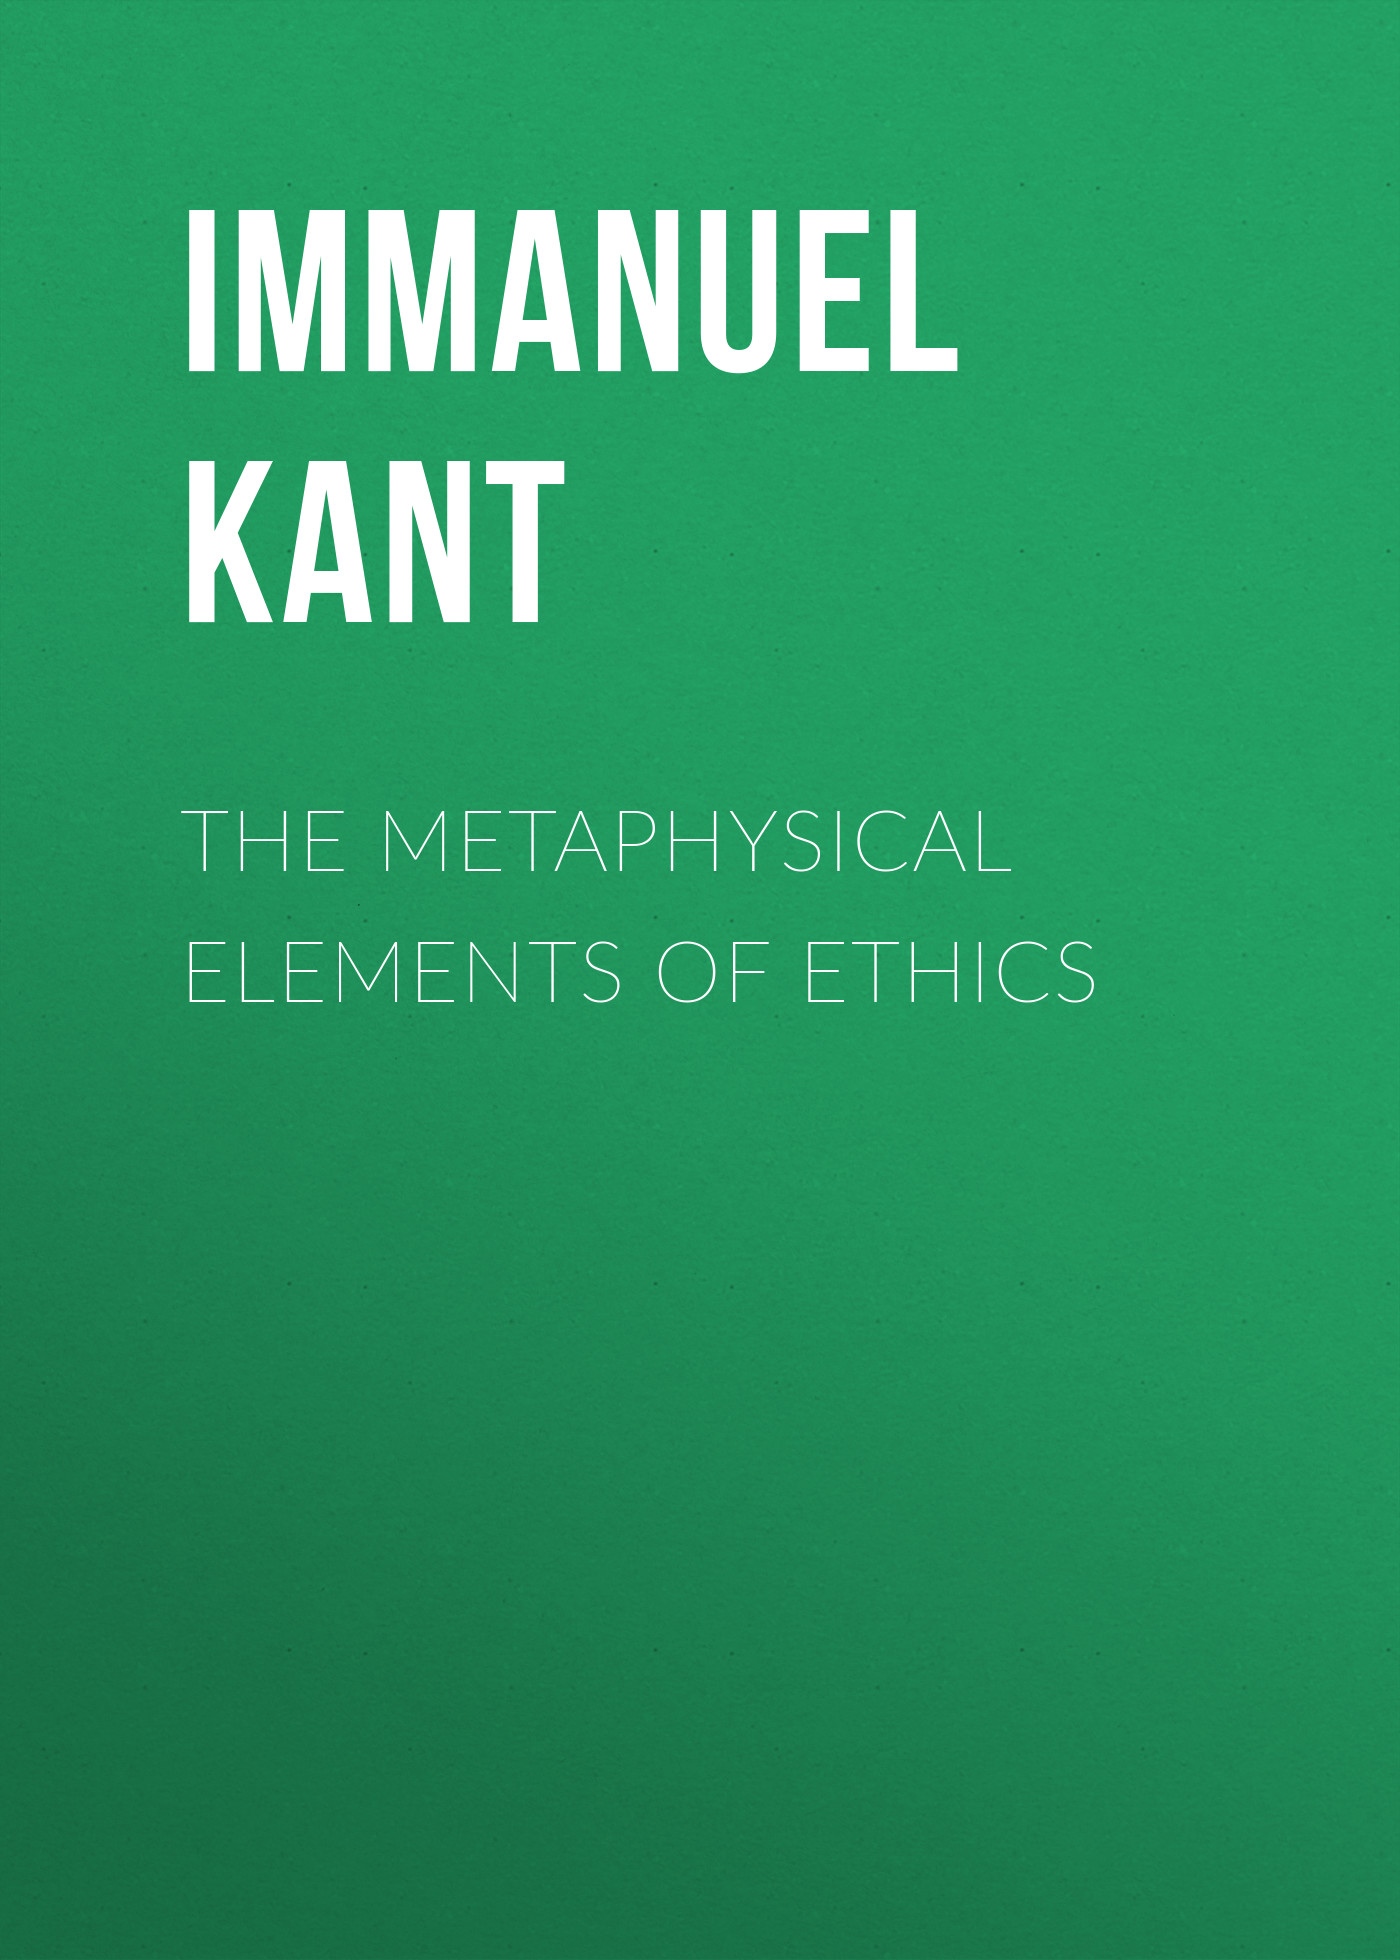 Immanuel Kant The Metaphysical Elements of Ethics